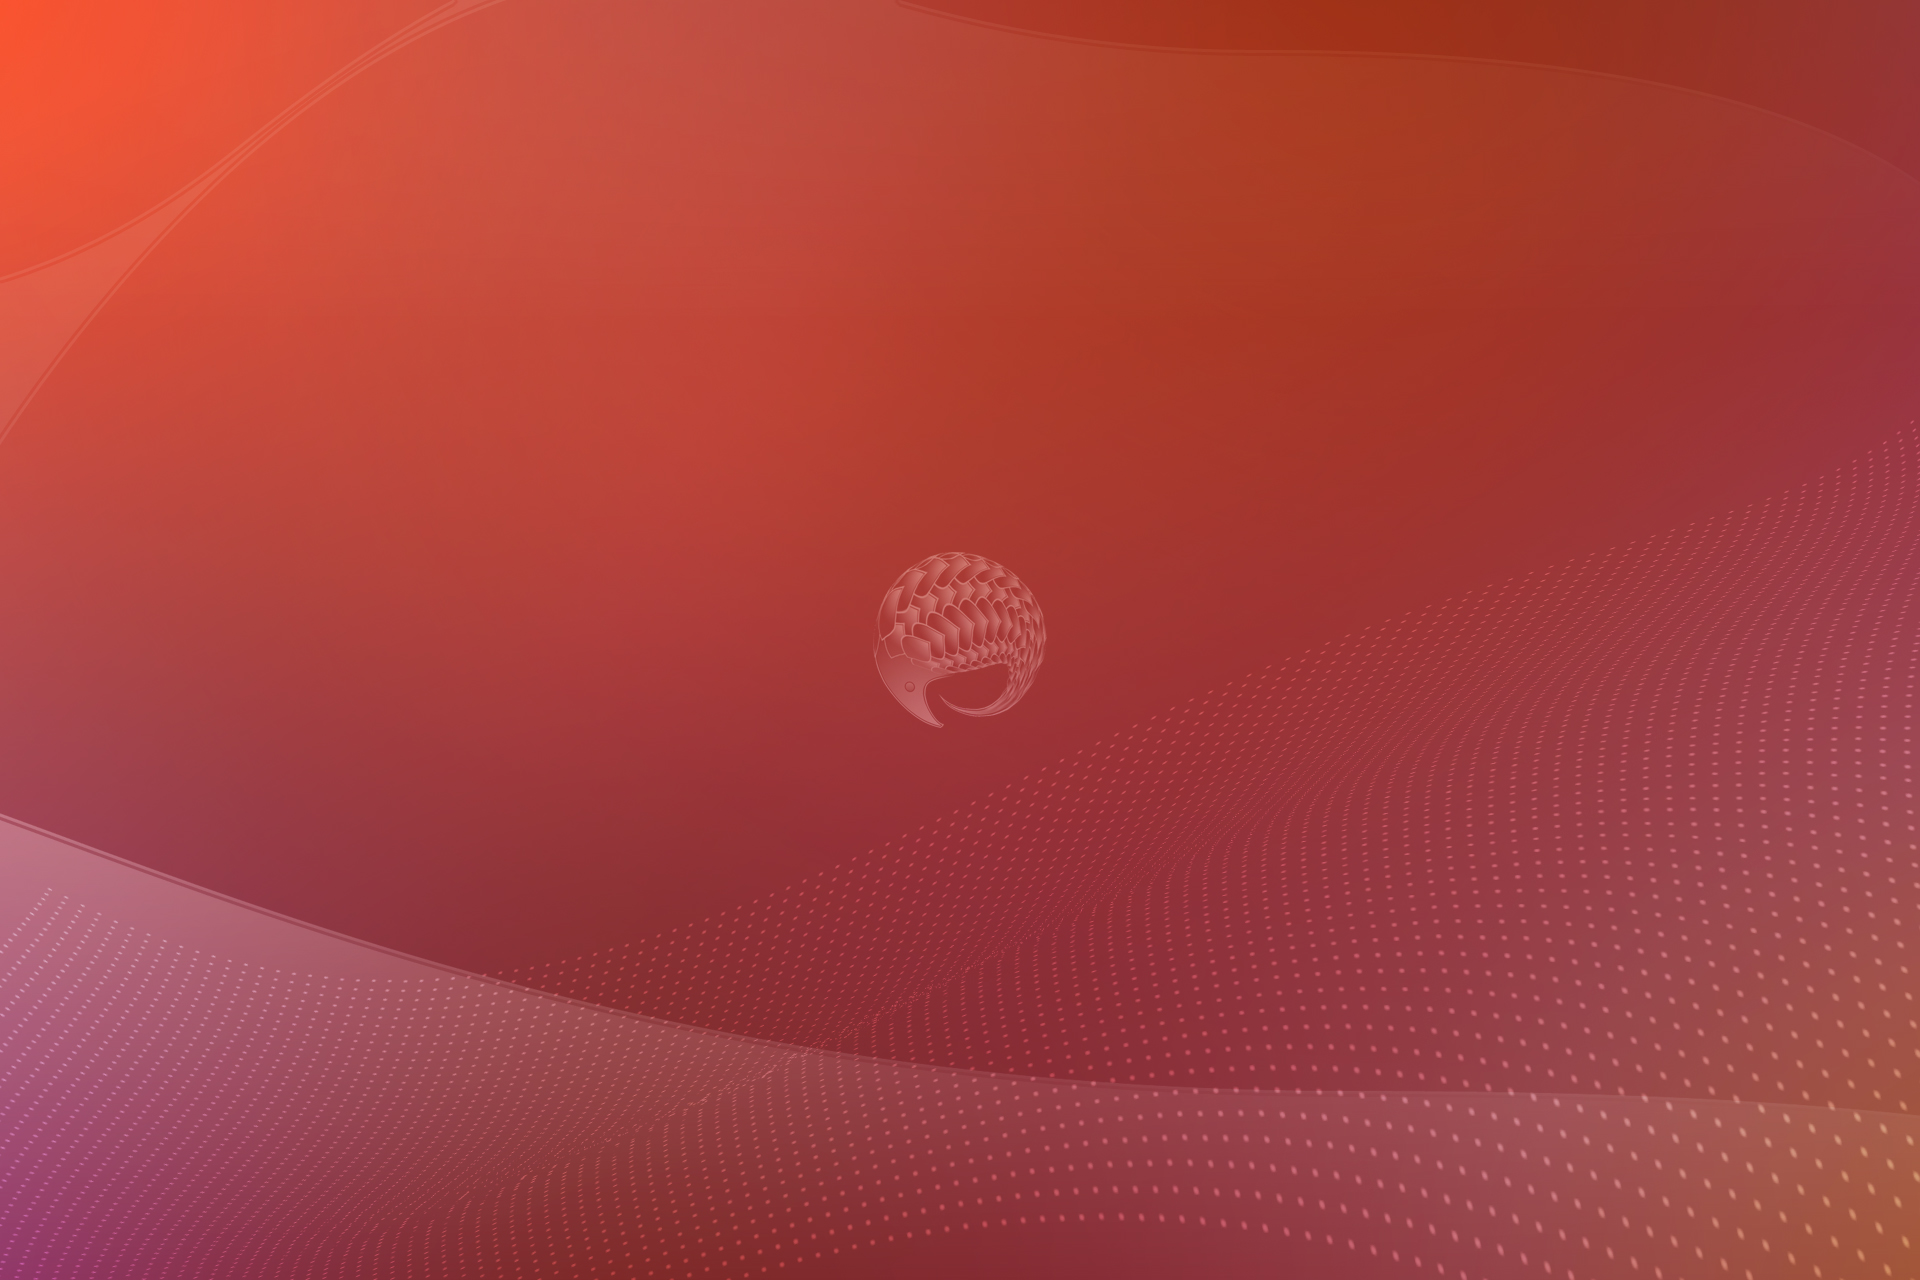 Ubuntu 1204 Precise Pangolin Wallpaper   Colors by eldron2323 on 1920x1280